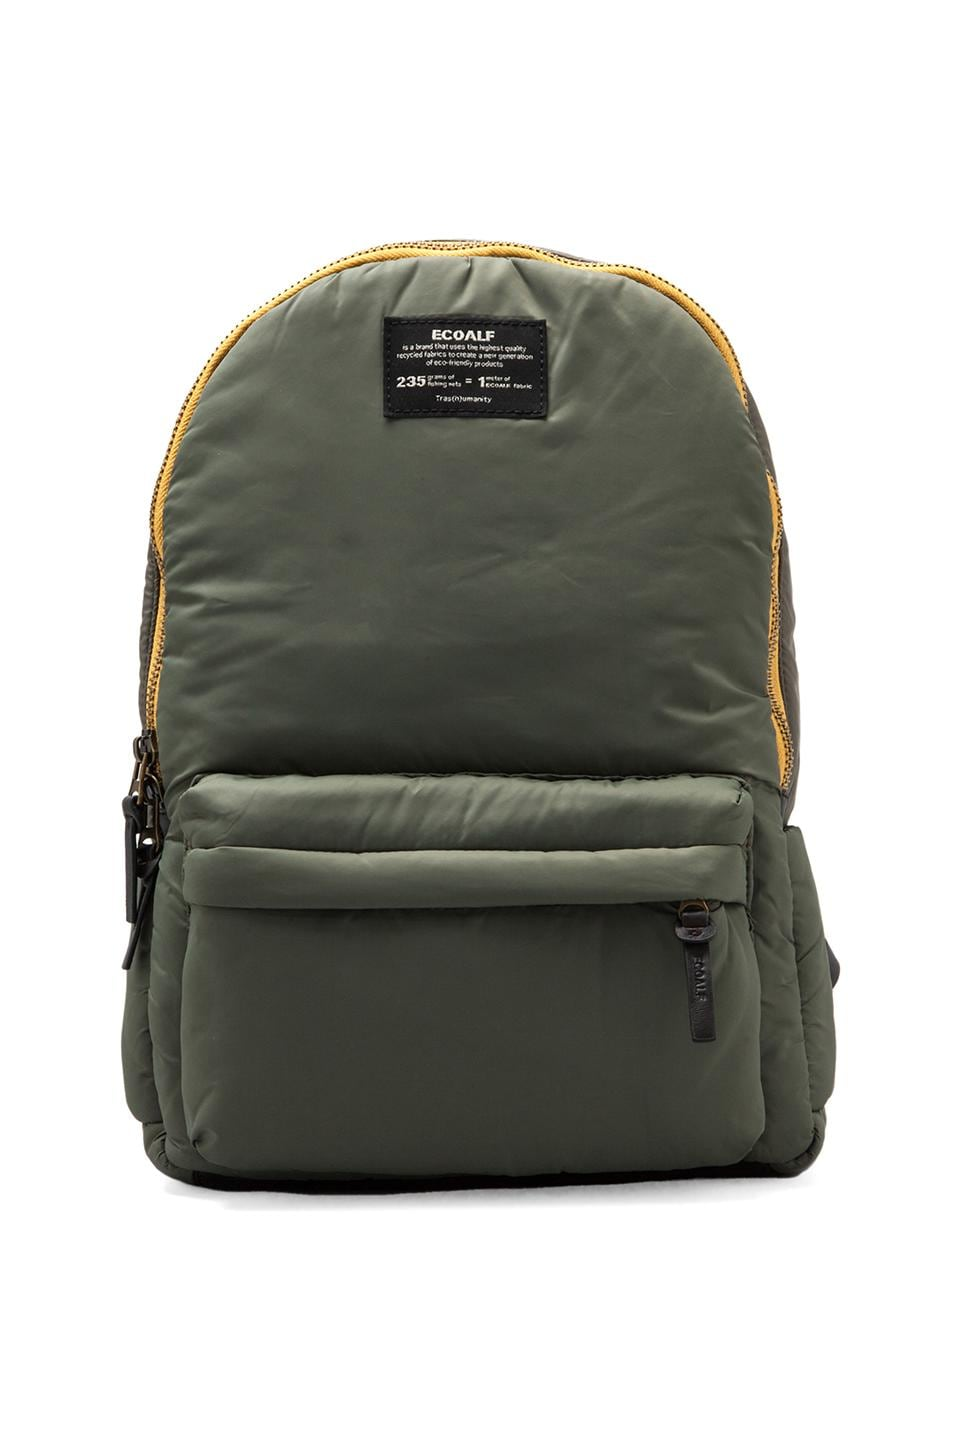 ECOALF Oslo Backpack in Deep Khaki